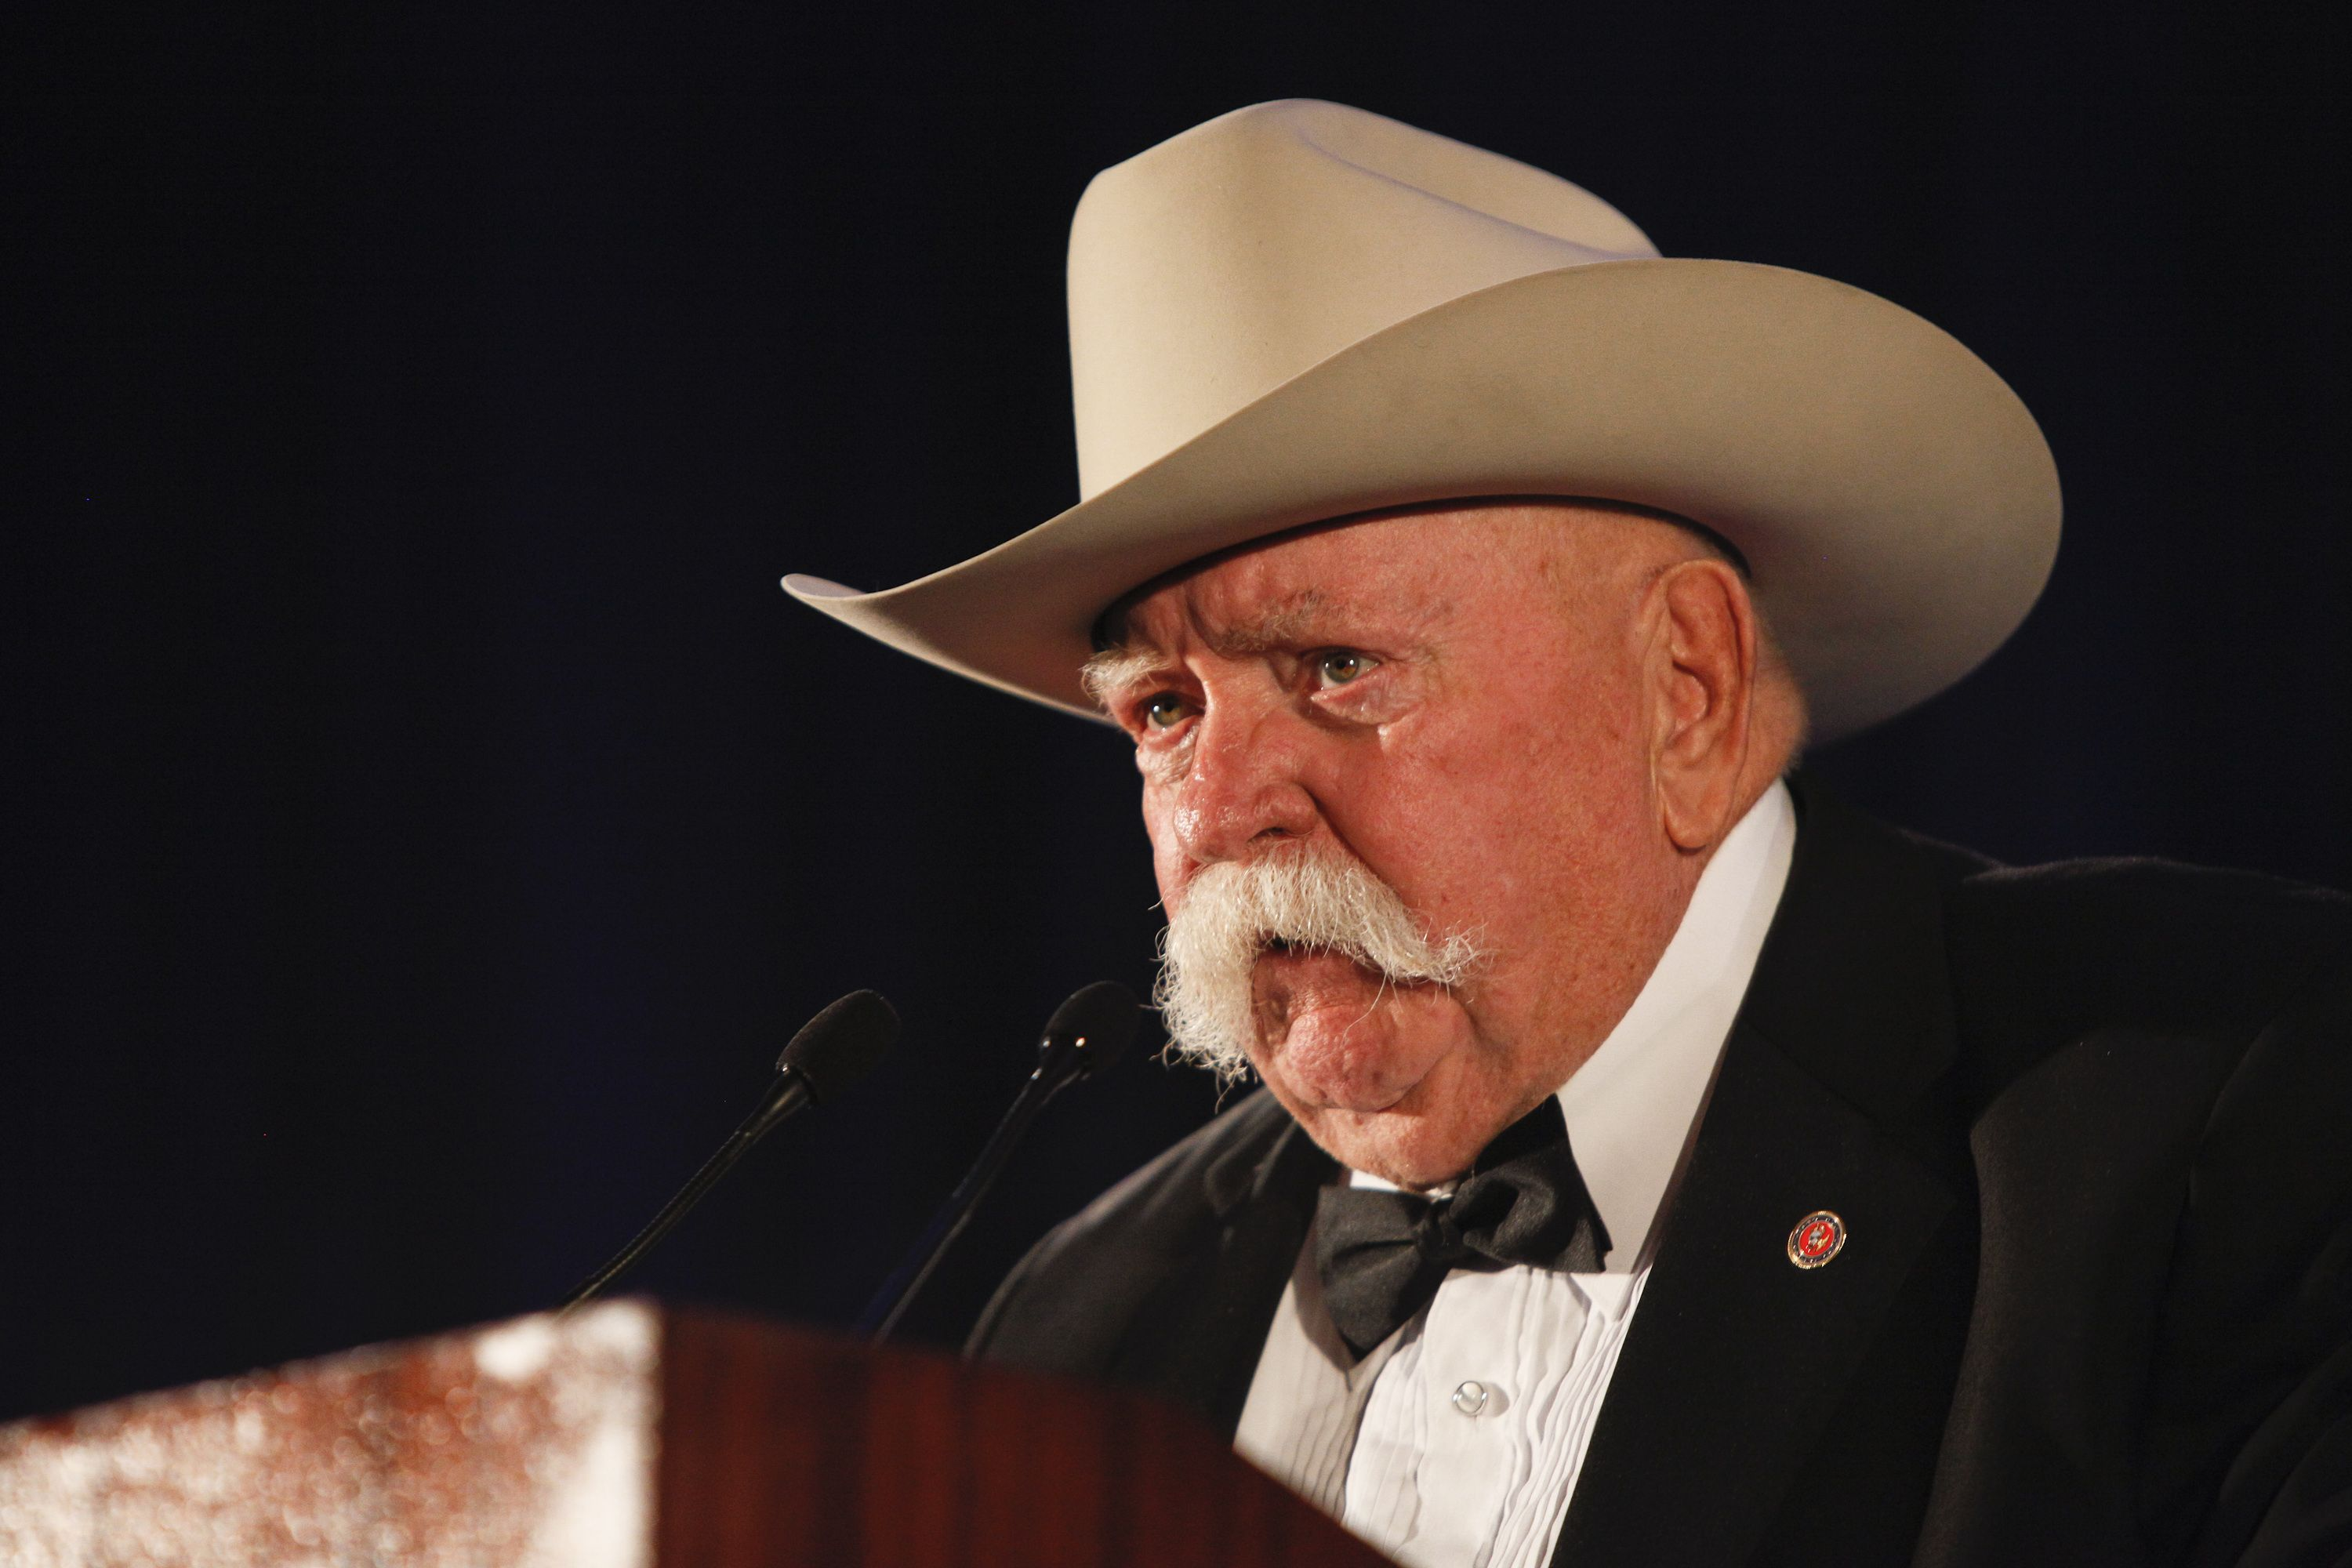 Wilford Brimley, Star of Cocoon, Dies at 85